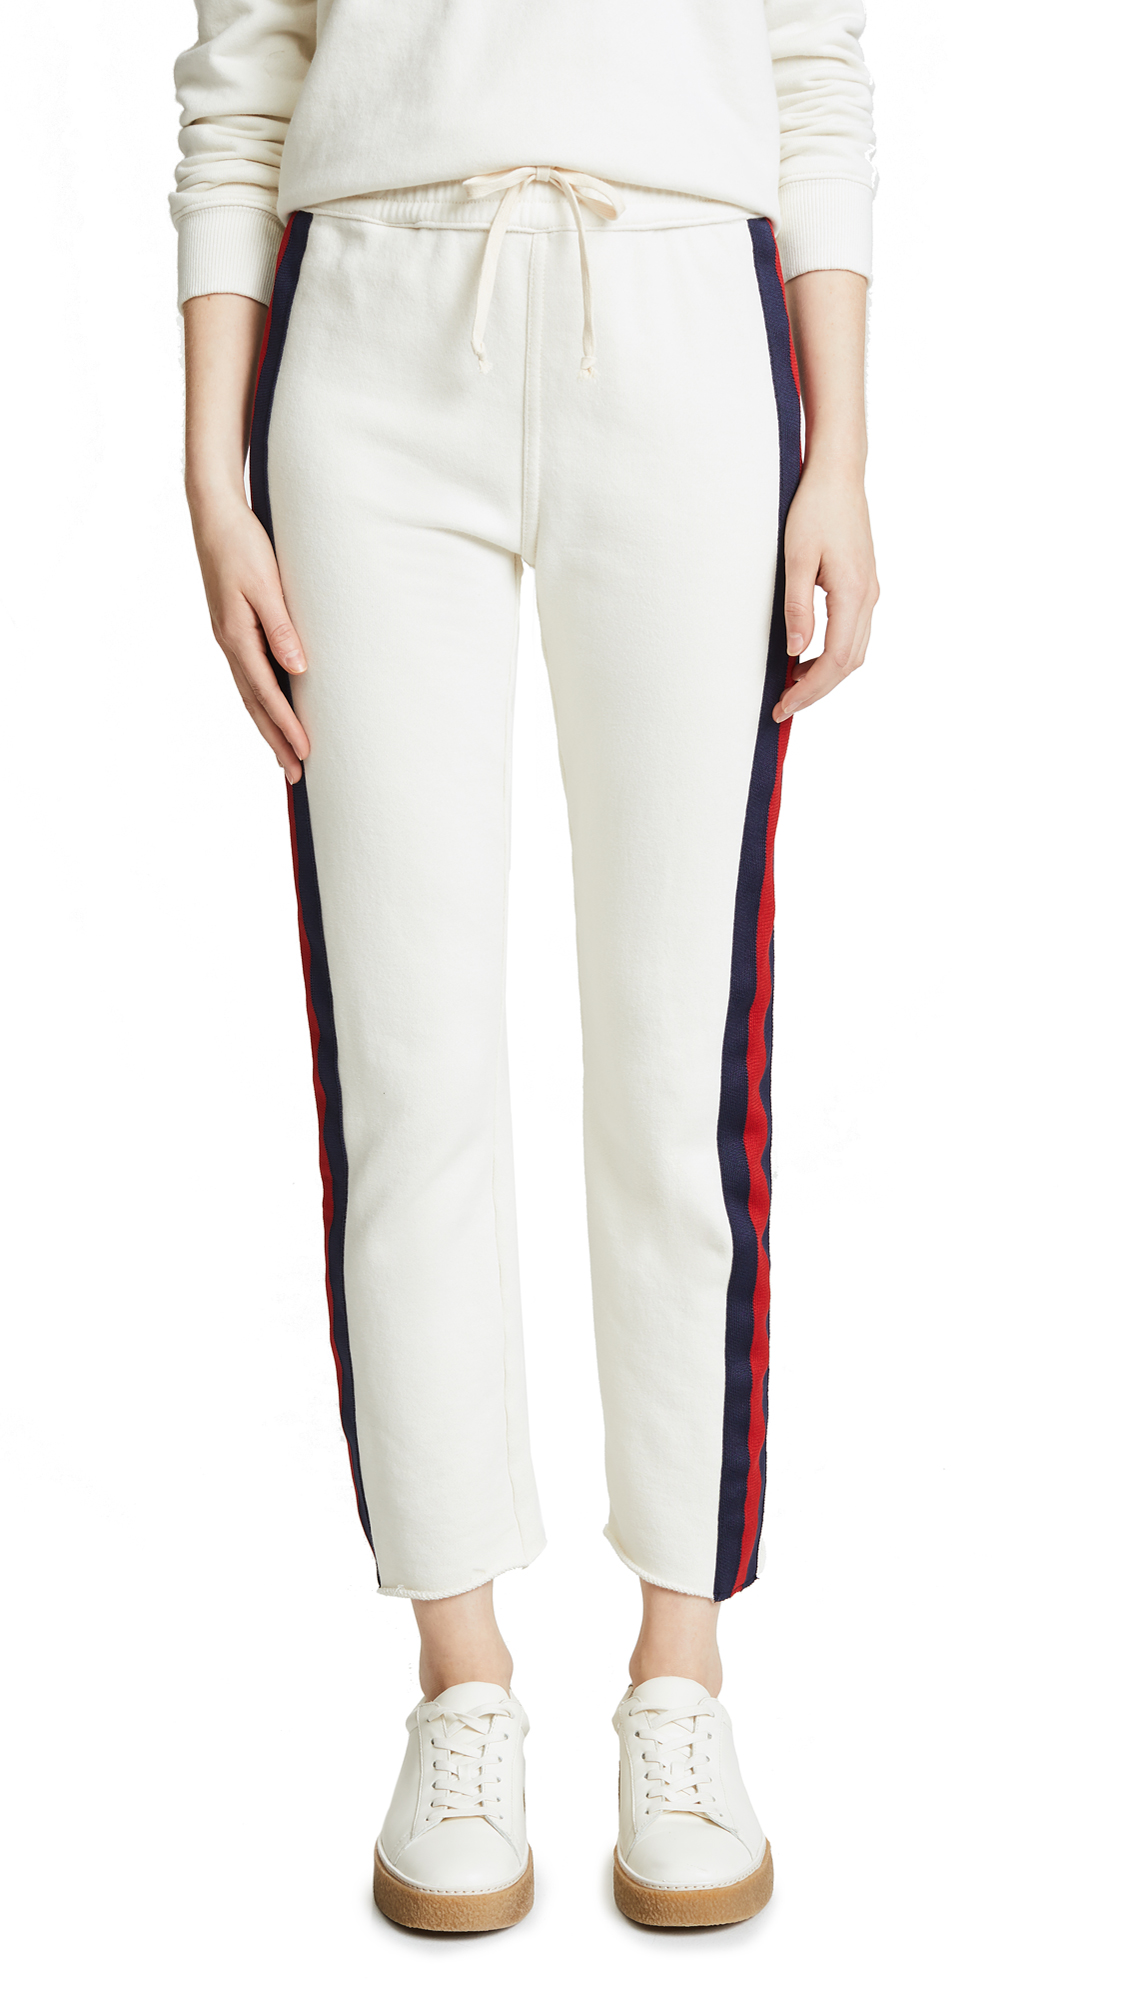 MOTHER Slim Gym Fray Pants - Out Of Your League